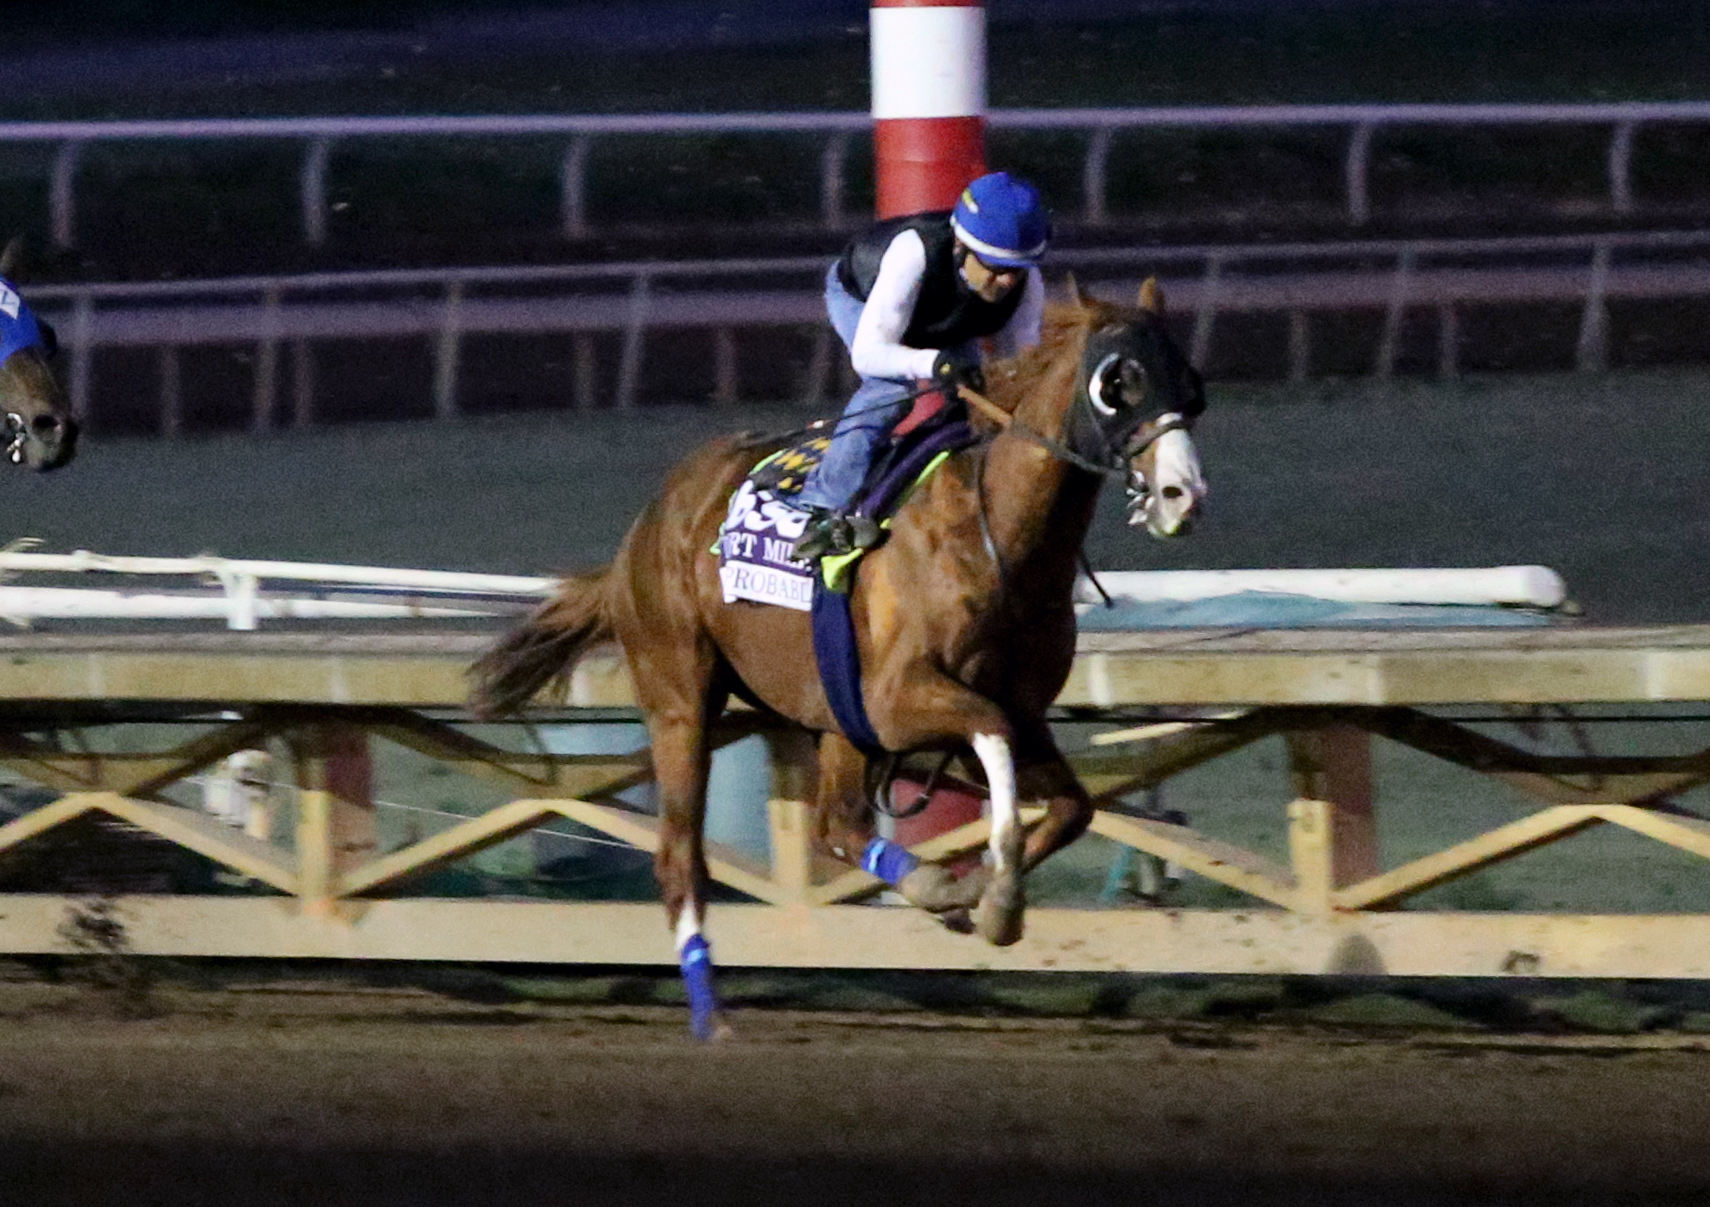 Breeders cup betting guide cpu only bitcoins price